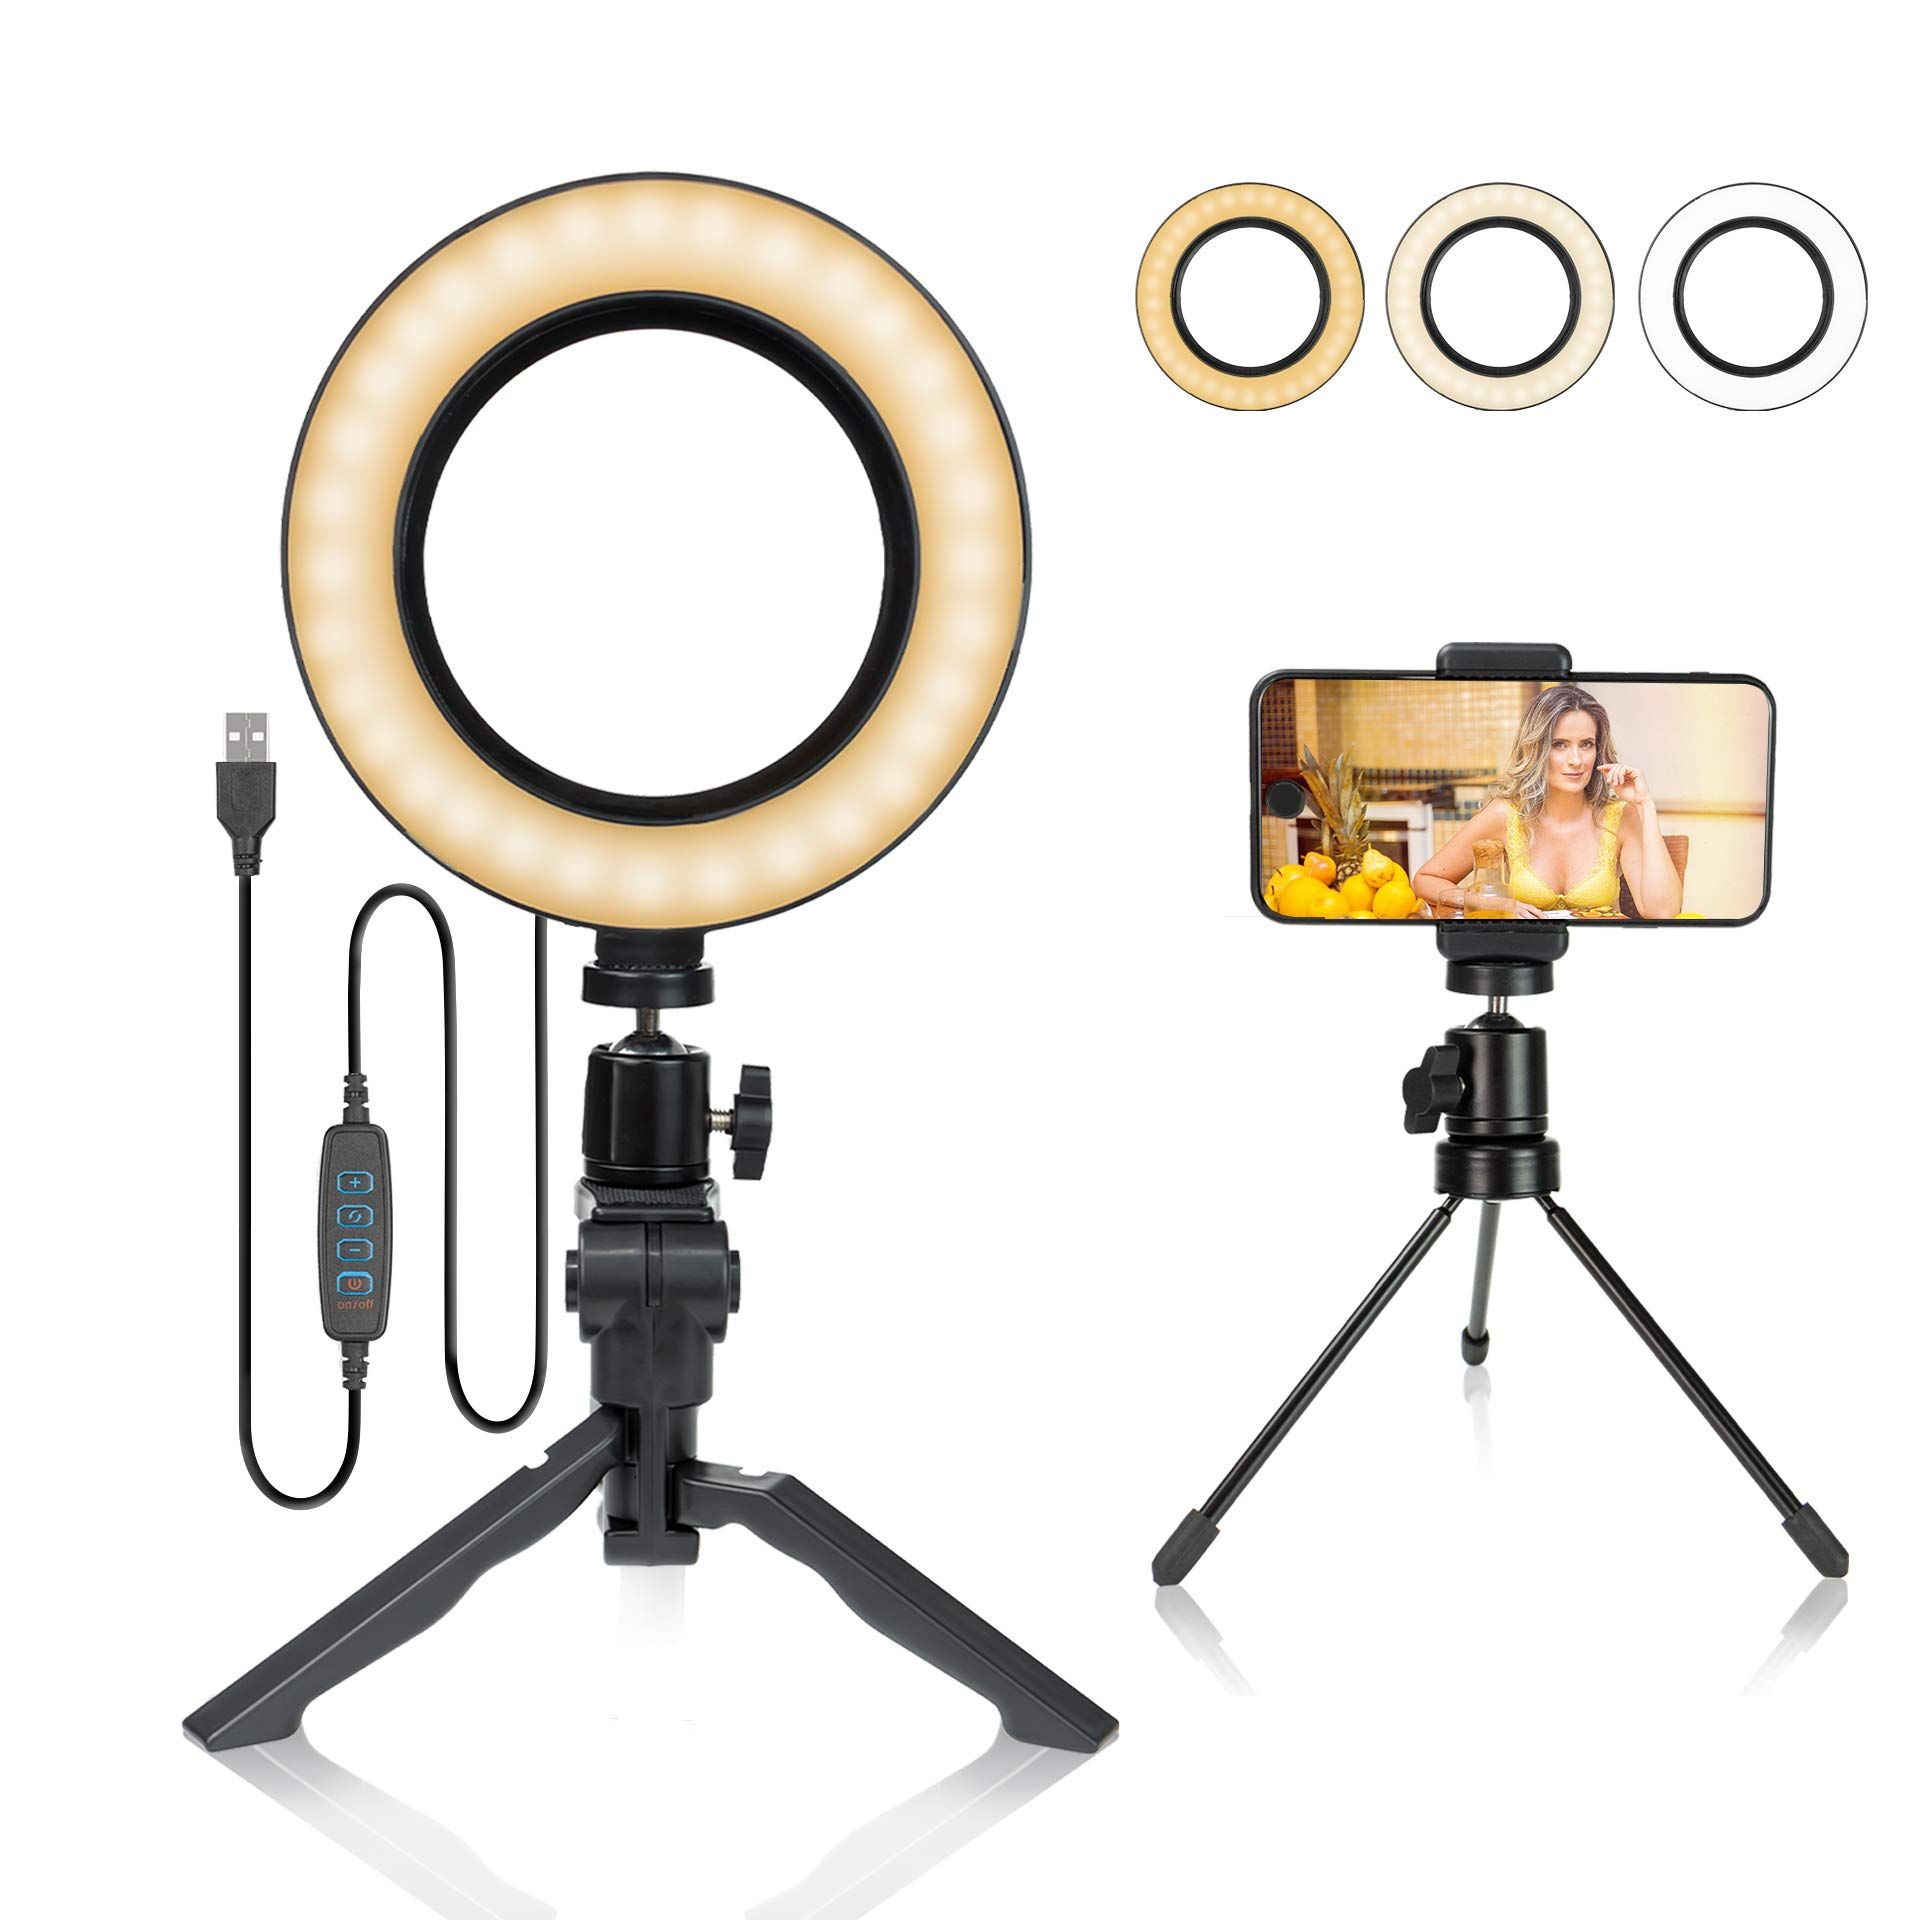 6 Inch Ring Light With Stand And Ring Light With Stand Led Ring Light Led Ring